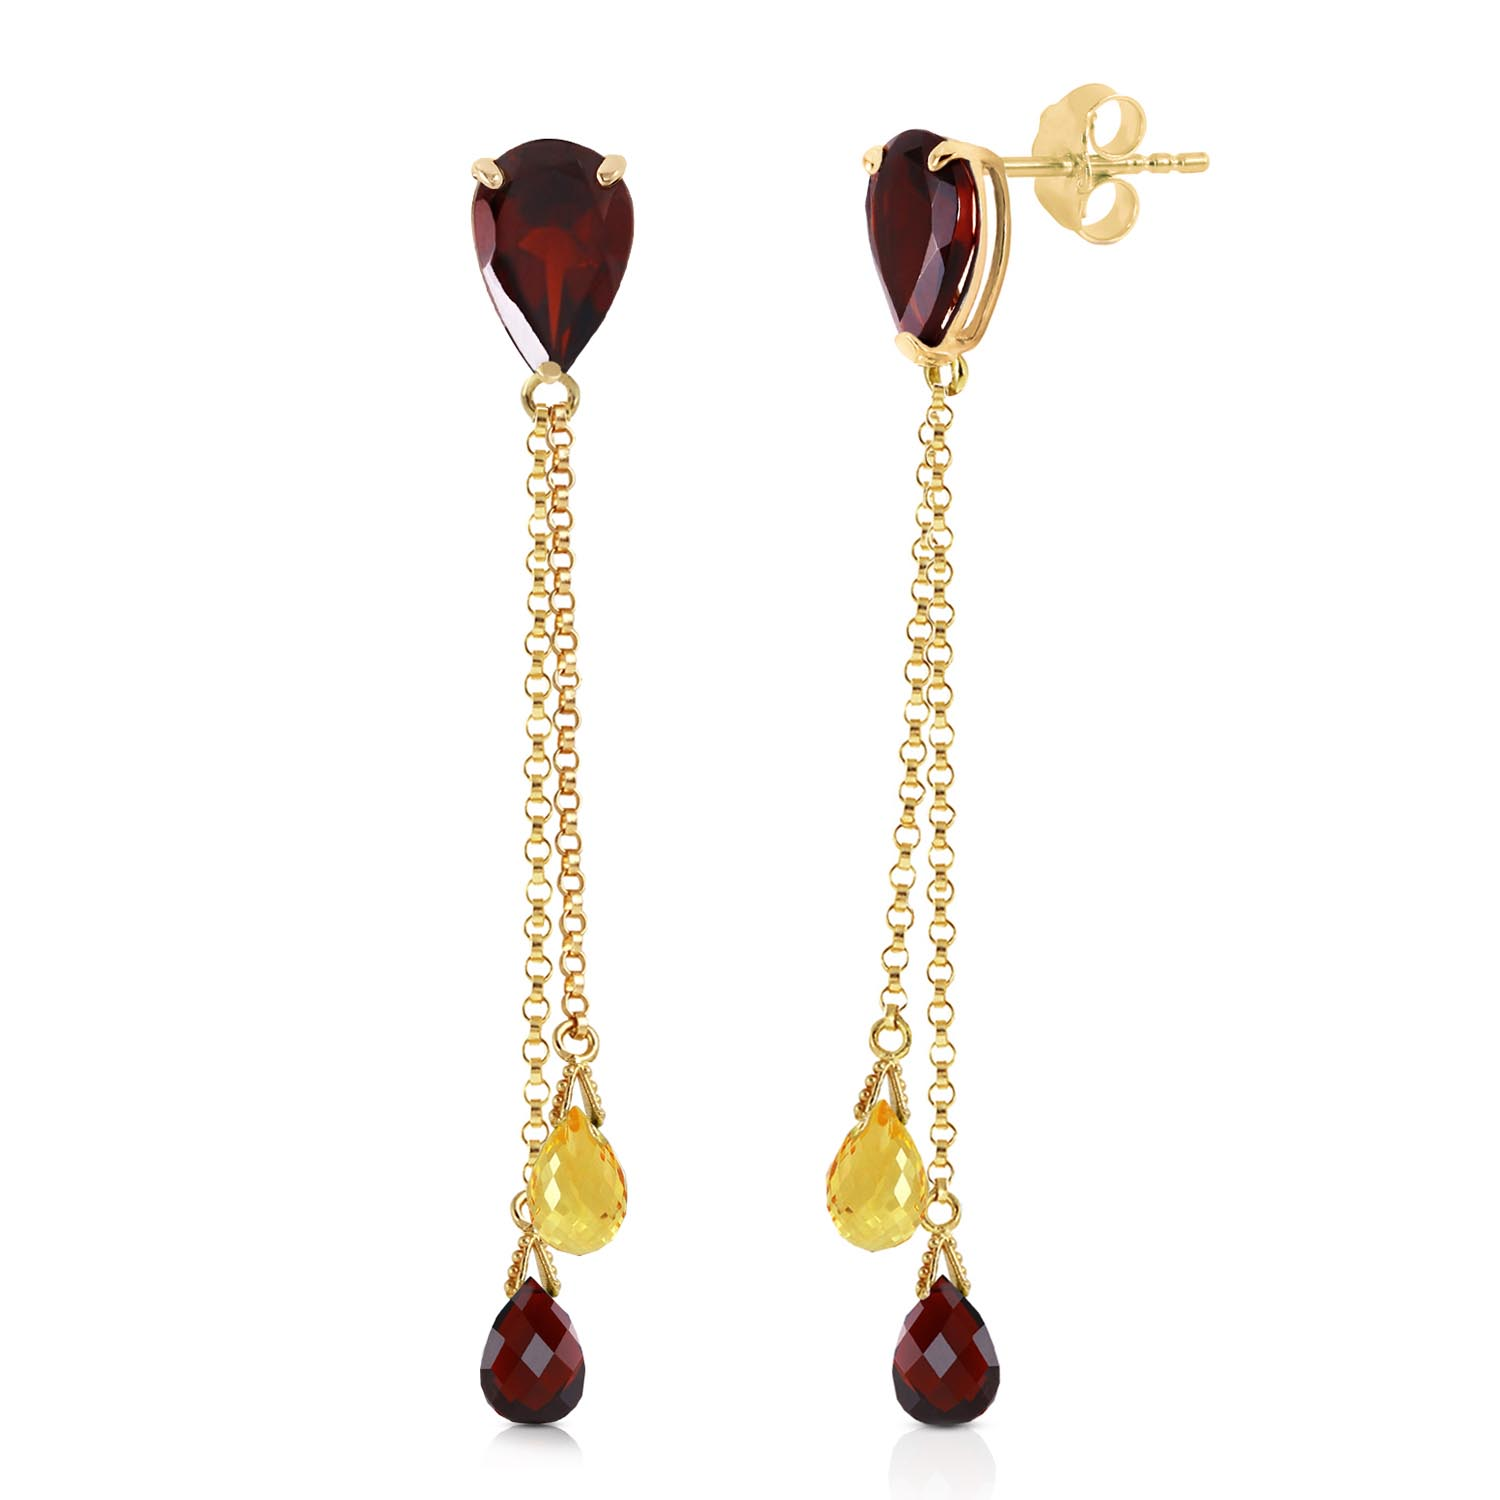 Garnet and Citrine Droplet Earrings 7.5ctw in 9ct Gold